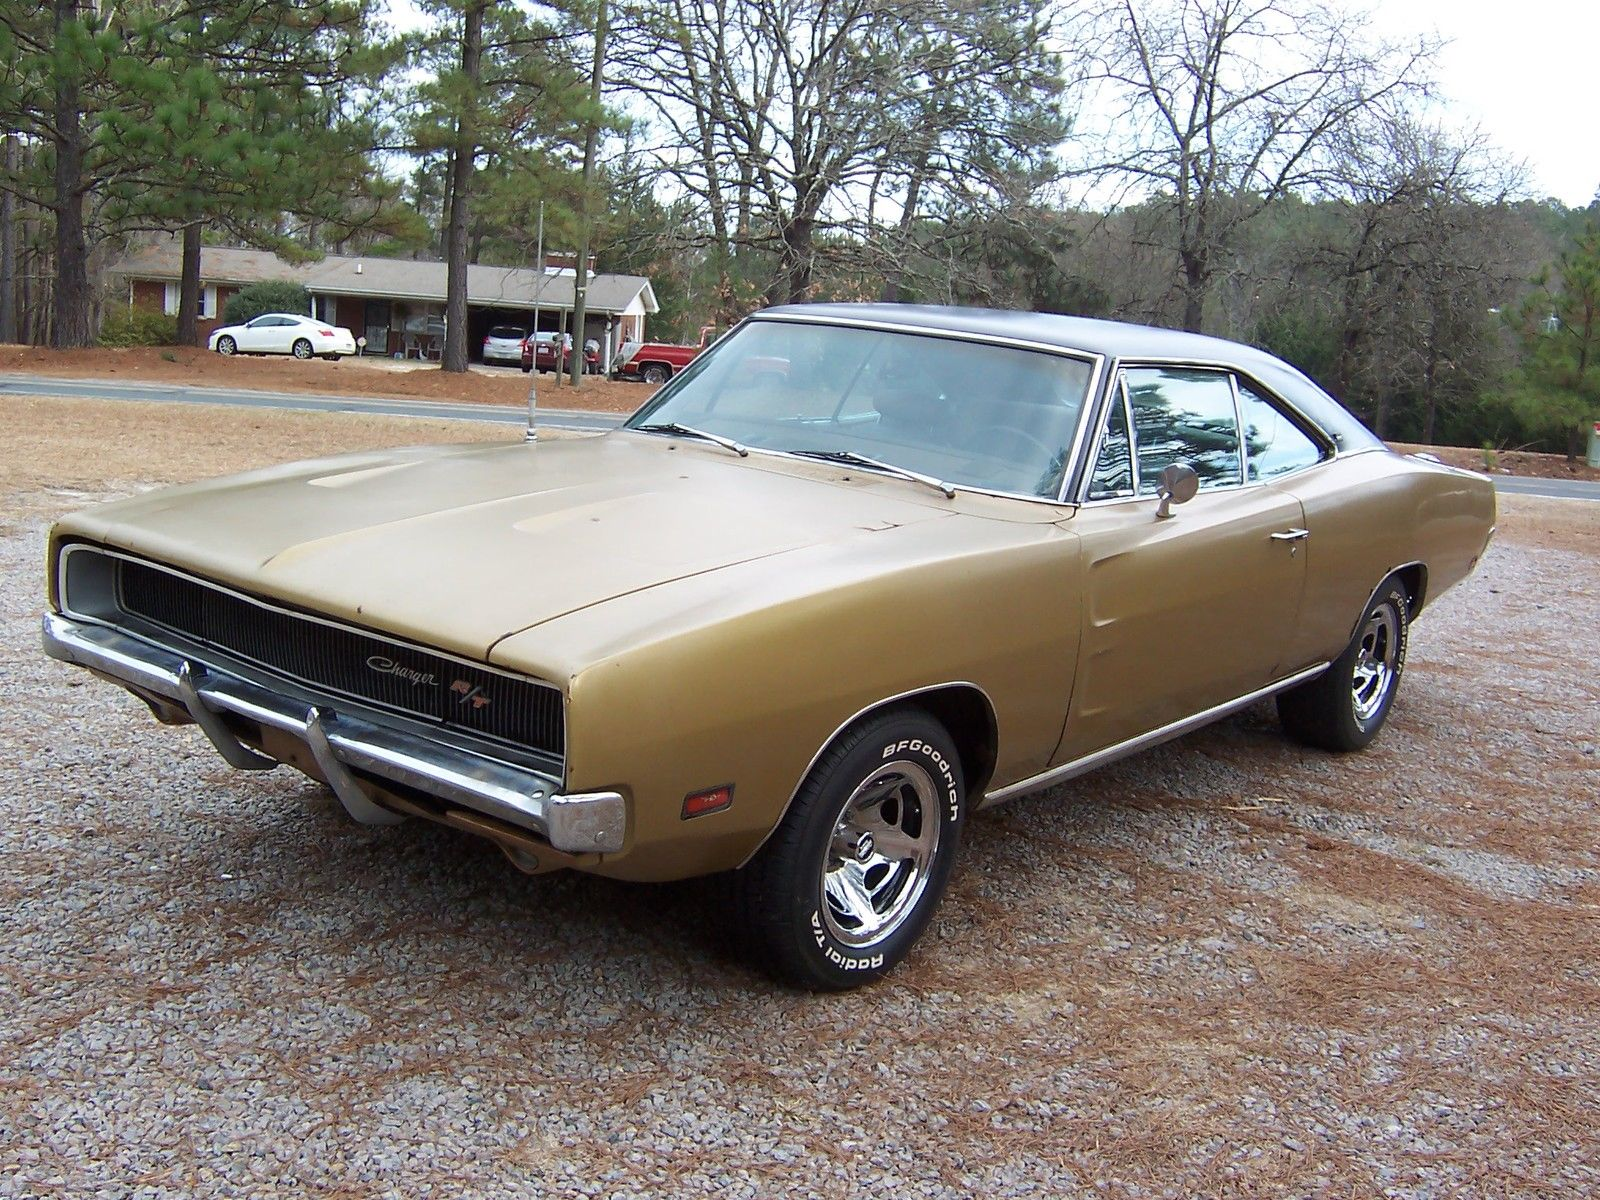 1969 Dodge Charger RT/SE - Classic Dodge Charger 1969 for sale